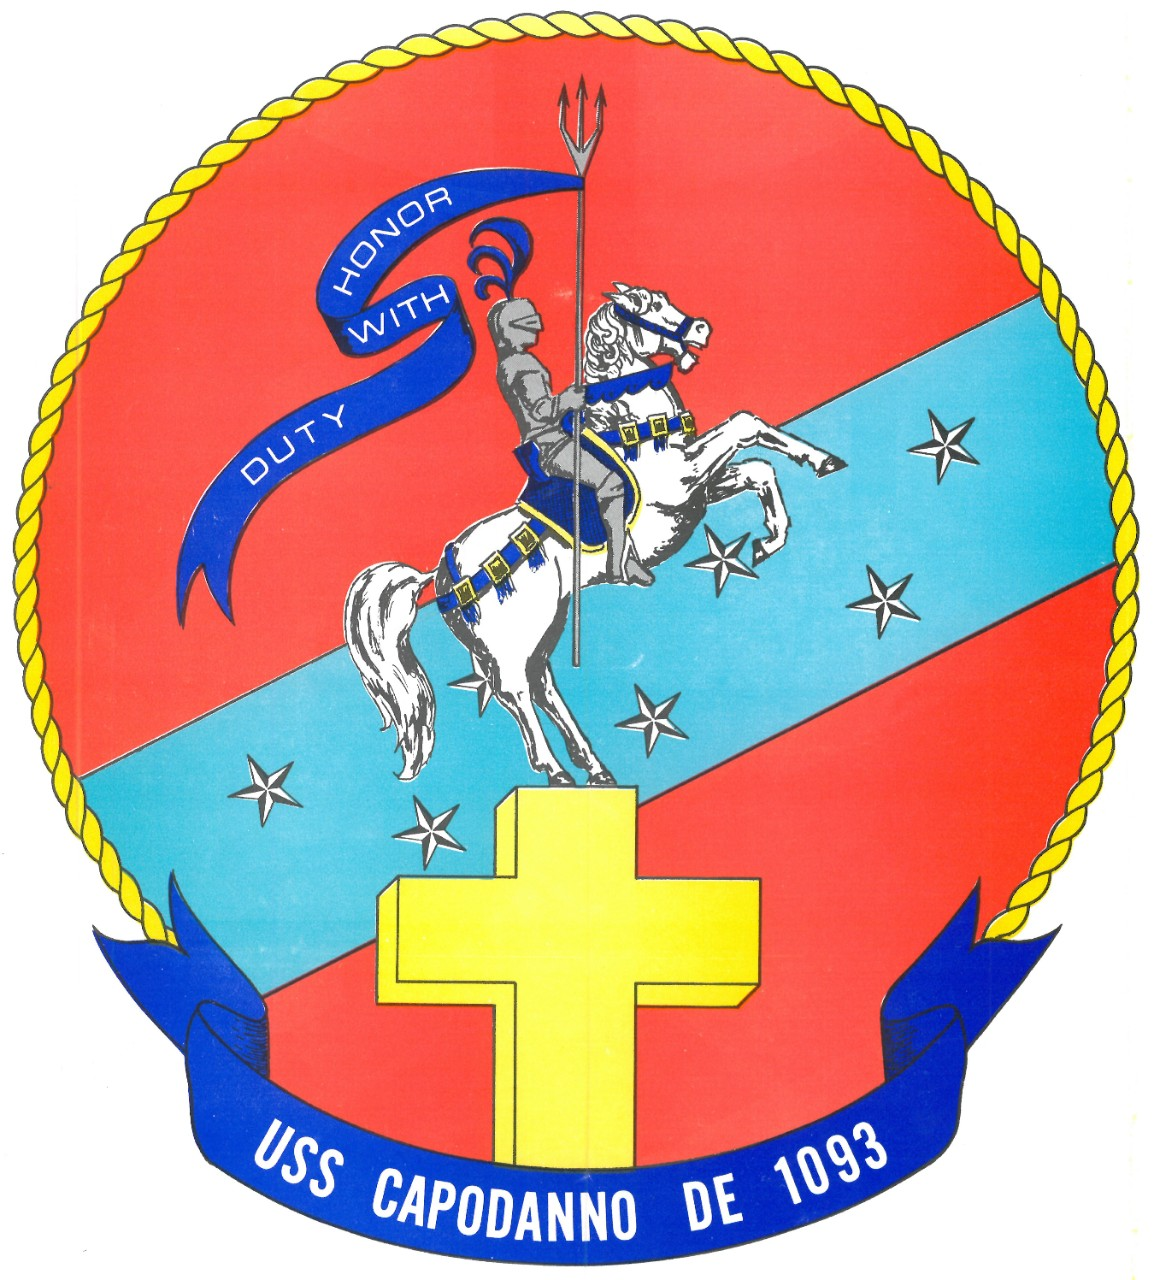 "Capodanno's insignia reflects the life and priestly vocation of Father Vincent R. Capodanno. It prominently features a gold cross that symbolizes both the purity and excellence which Father Capodanno dedicated himself to his fellow men, as well as the Gallantry Cross that was awarded to him by the government of Vietnam. The rearing horse standing astride the cross is derived directly from the Capodanno coat-of-arms, representing the courageous and zealous pursuit of justice, while the silver knight mounted atop it brandishing a trident symbolizes the noble, steadfast, invincible control of the seas. Affixed to the trident is a blue streamer bearing the ship's motto, ""Duty with Honor,"" which was inspired by Father Capodanno's dual roles as both clergyman and soldier and the gallantry with which he fulfilled both roles. His Medal of Honor is commemorated by the azure ribbon with seven stars that streaks diagonally across the insignia. Finally, the insignia's red background and gold trim acknowledge Father Capodanno's service with the Marine Corps. (Capodanno (DE-1093), Ship's History, Naval History and Heritage Command)"